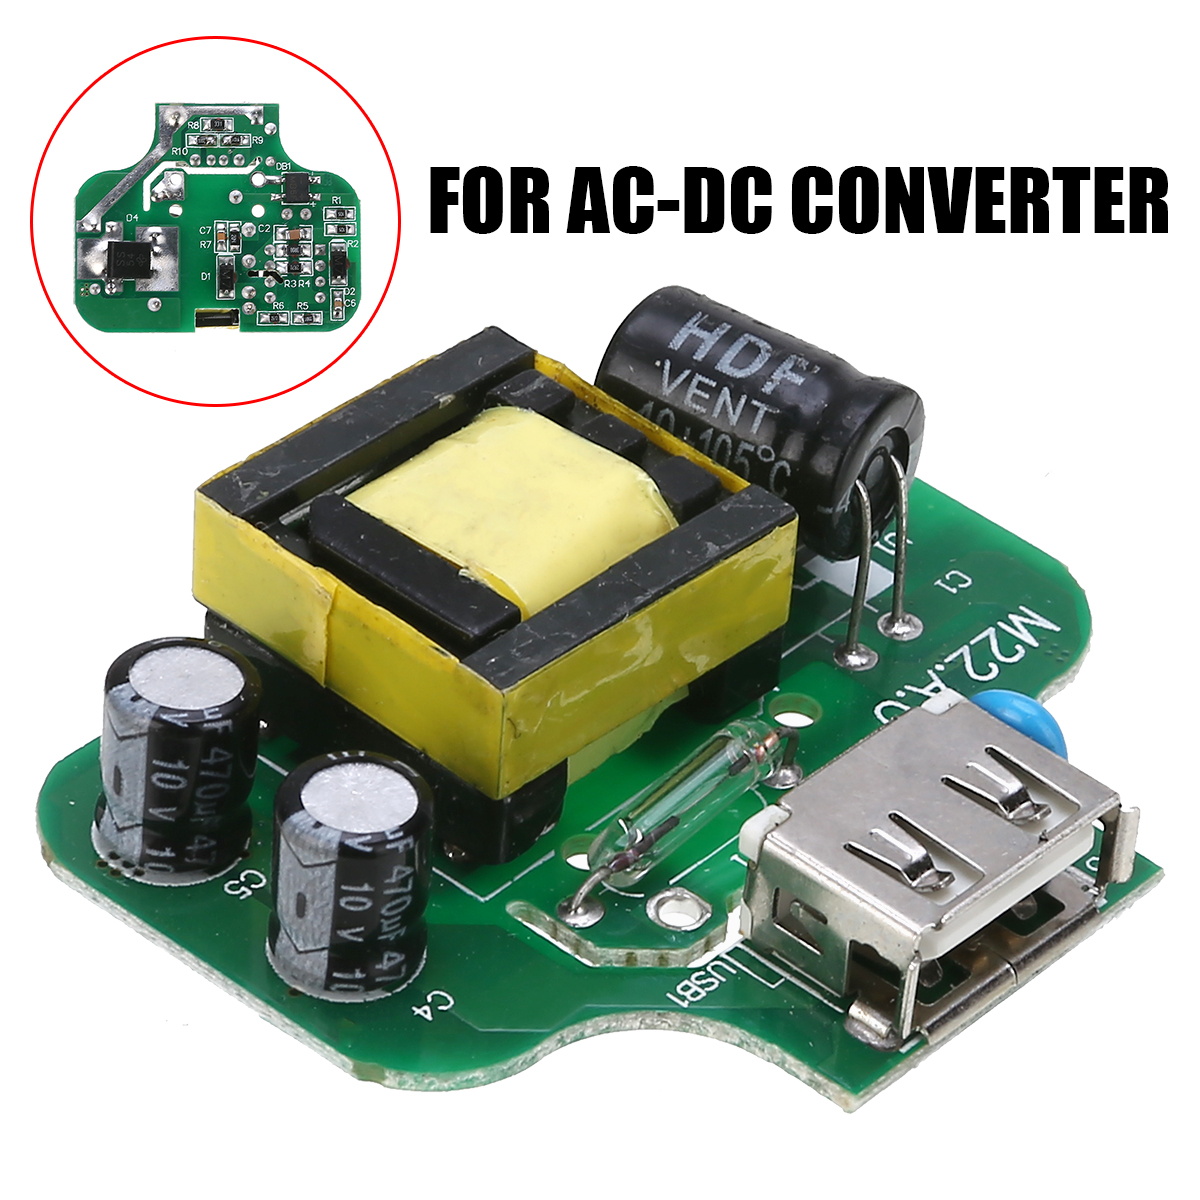 Durable AC-DC Power <font><b>Adapter</b></font> Converter AC 110V 220V 230V to DC <font><b>5V</b></font> 2.1A <font><b>USB</b></font> Output DIY Phone Charger Power Supply Module Board image